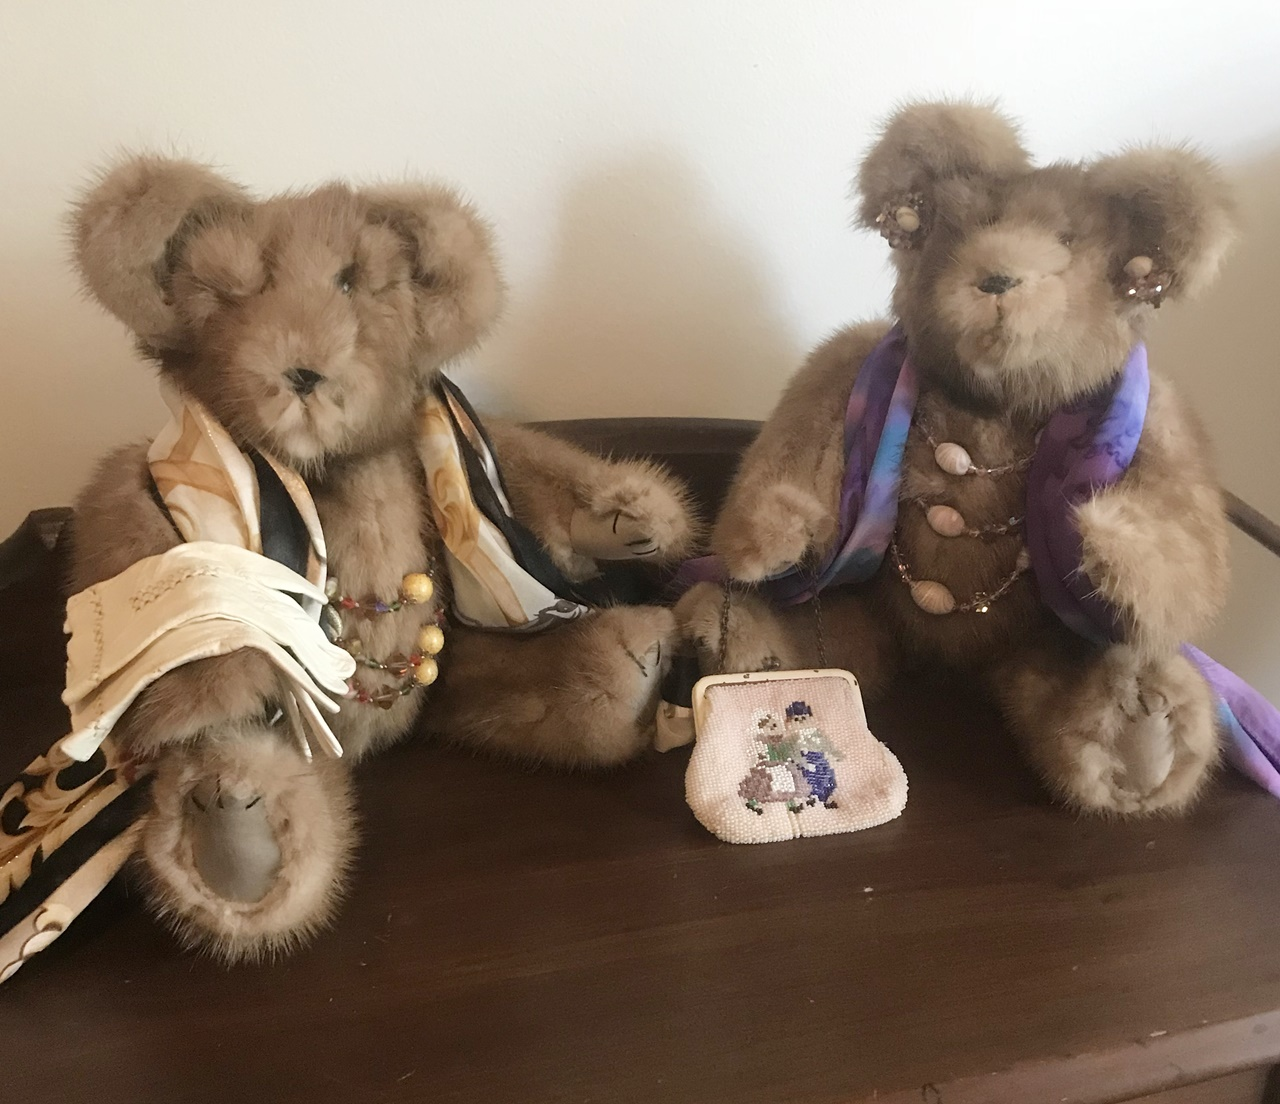 For Connie, 2018, 3 pictures. We made thers bears from Connie's vinatge mink stole. Then she dressed them herself them in these wonderful old family pieces.